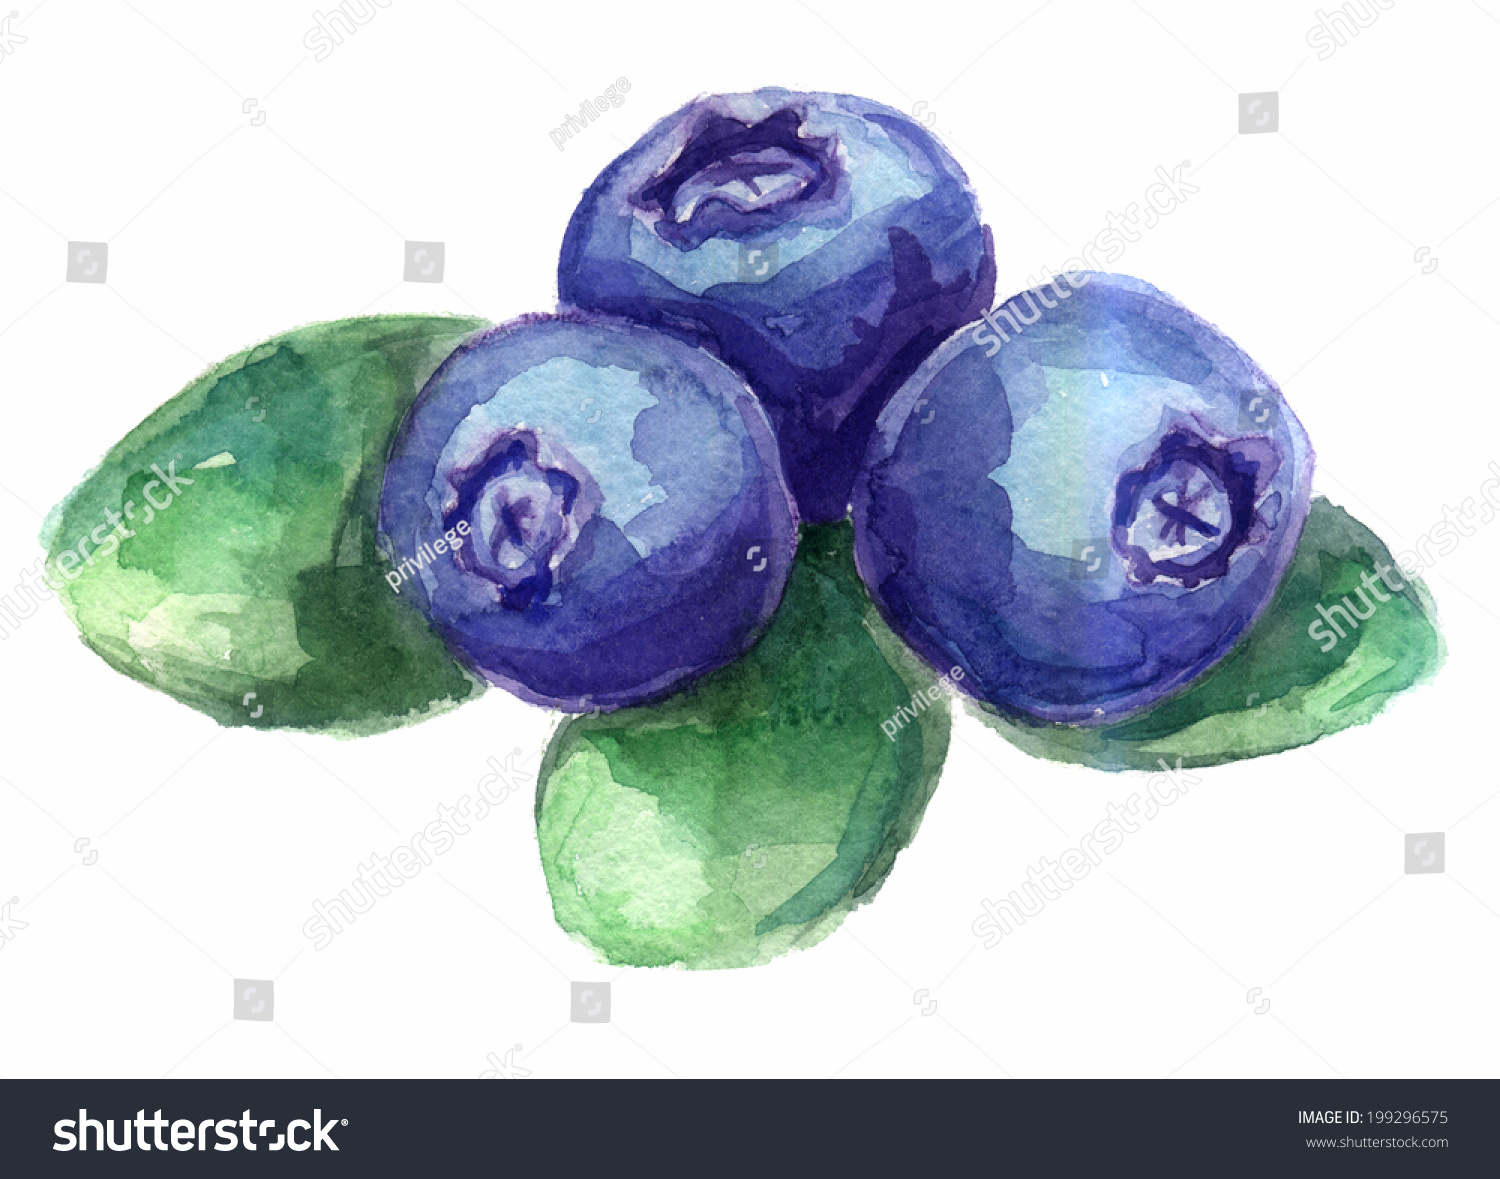 Watercolor Sketch Blueberries Stock Illustration 199296575 ...